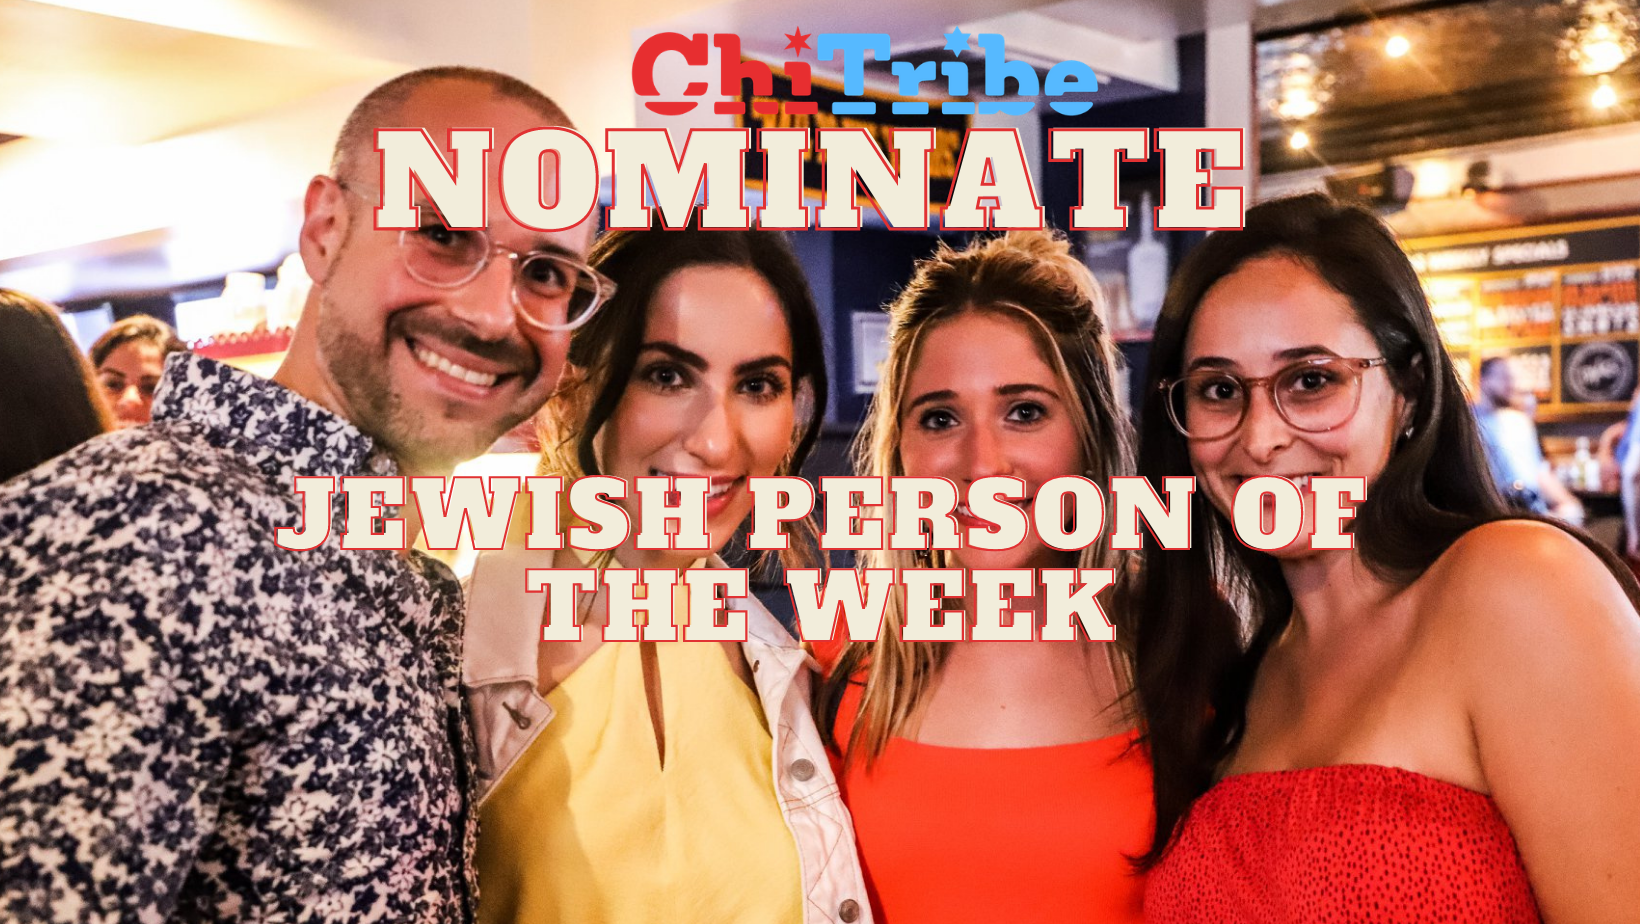 jewish person of the week chitribe